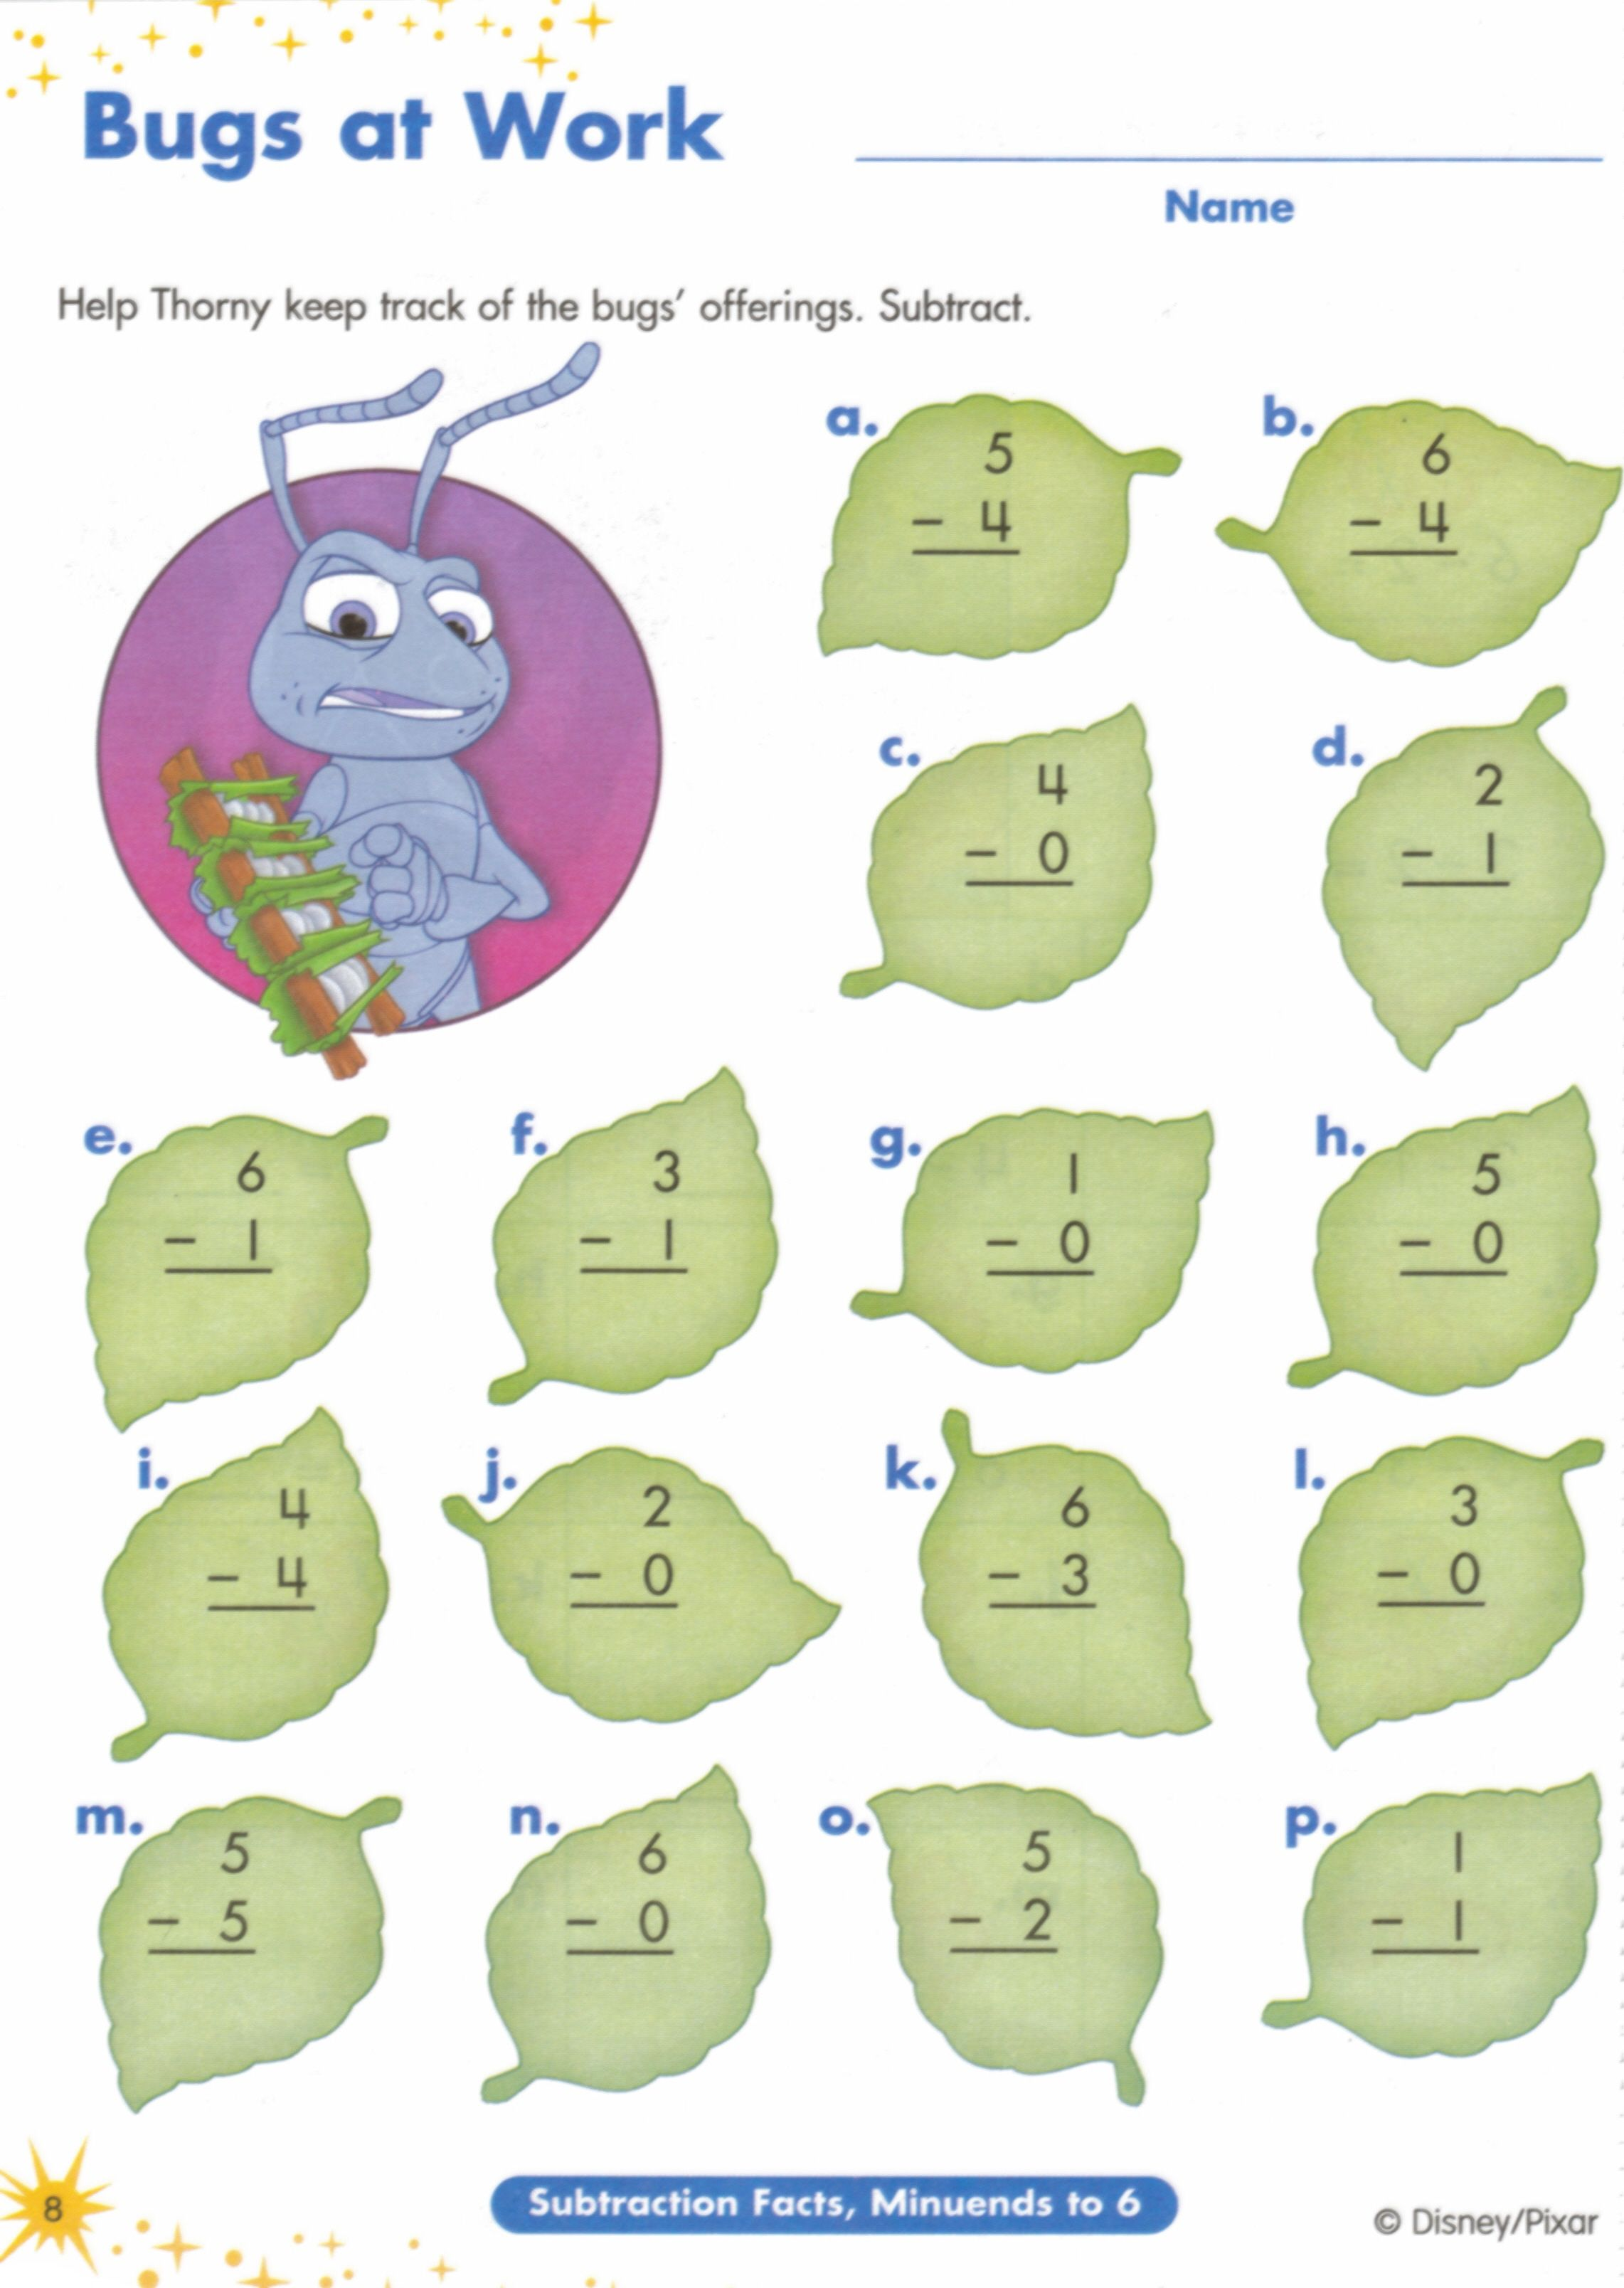 Weirdmailus  Pleasing  Images About Worksheets On Pinterest  Fun Facts For Kids  With Licious  Images About Worksheets On Pinterest  Fun Facts For Kids Earth Day Worksheets And Jungles With Nice Two Steps Equations Worksheets Also Beginners Italian Worksheets In Addition Fraction To A Decimal Worksheet And Math For Third Grade Worksheets As Well As Worksheets Pronouns Additionally Kids Halloween Worksheets From Pinterestcom With Weirdmailus  Licious  Images About Worksheets On Pinterest  Fun Facts For Kids  With Nice  Images About Worksheets On Pinterest  Fun Facts For Kids Earth Day Worksheets And Jungles And Pleasing Two Steps Equations Worksheets Also Beginners Italian Worksheets In Addition Fraction To A Decimal Worksheet From Pinterestcom